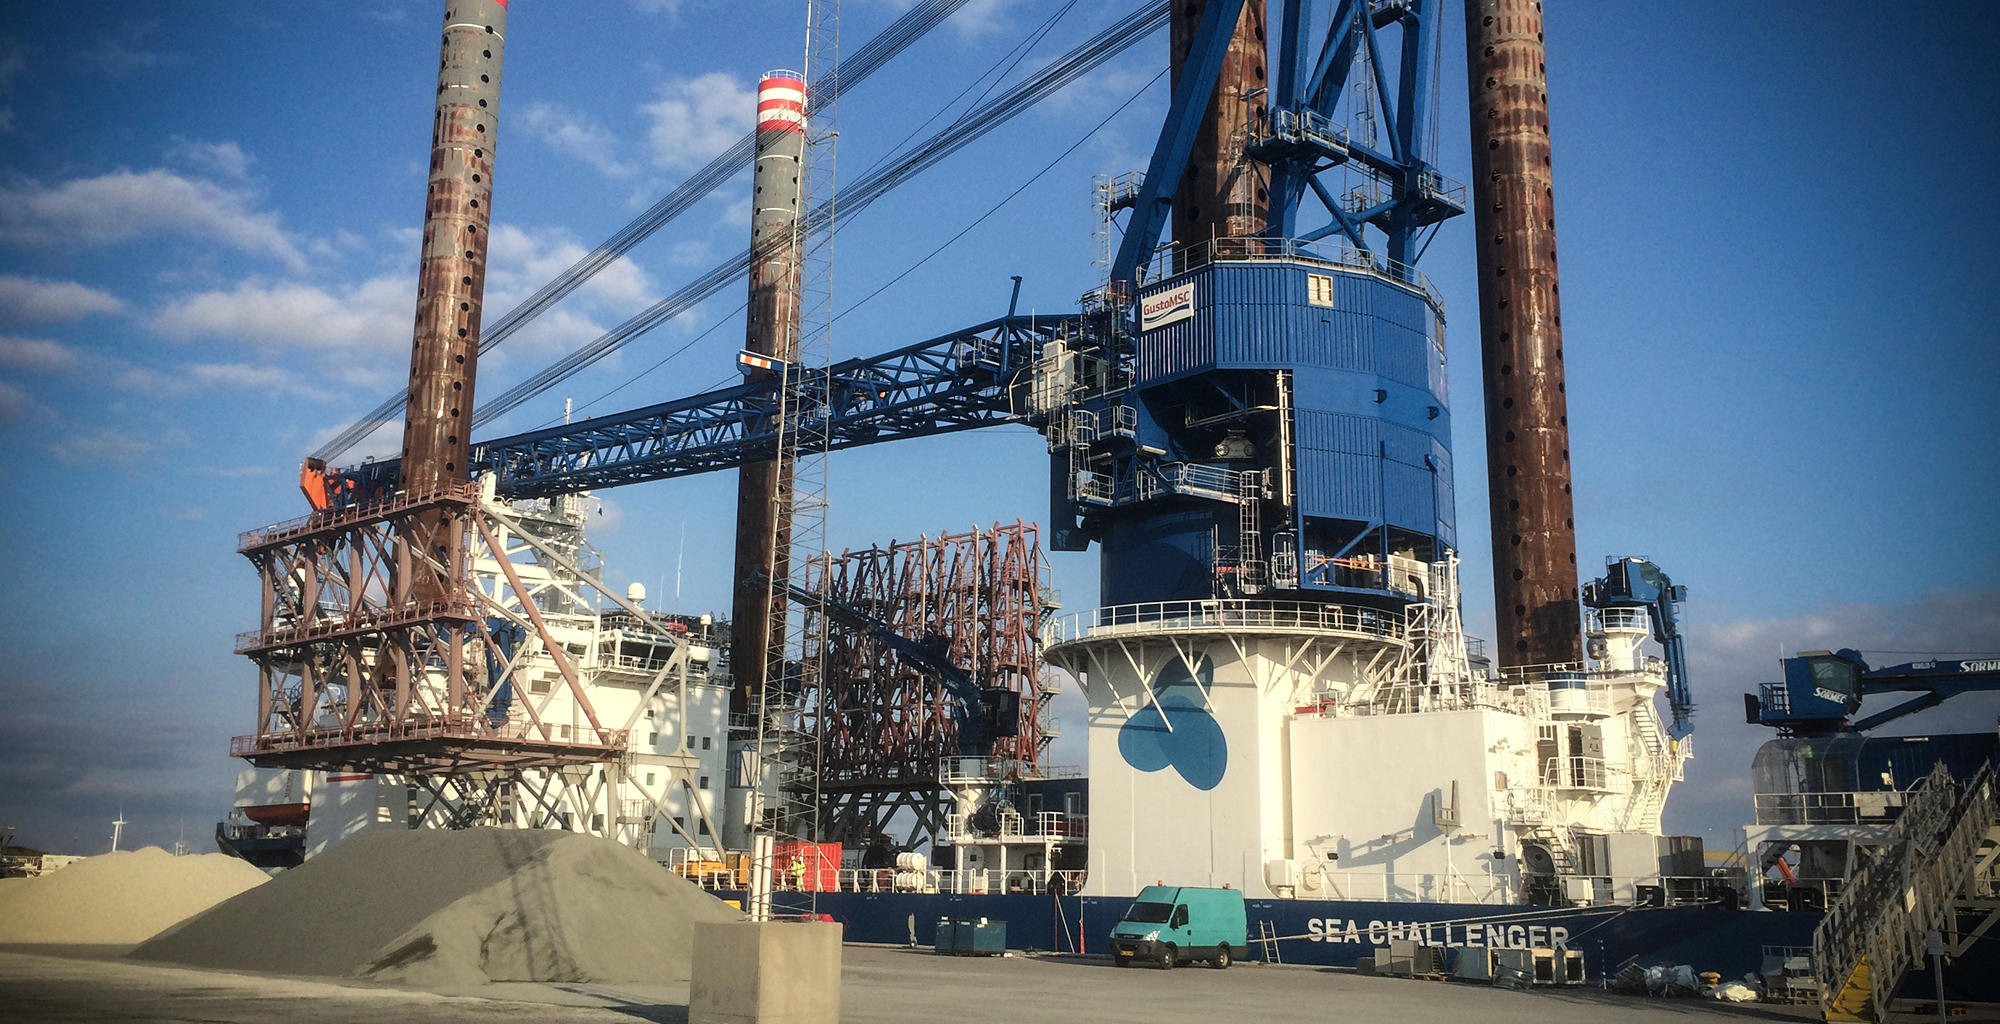 A2SEA - SEA CHALLANGER jack-up vessel for the wind industry